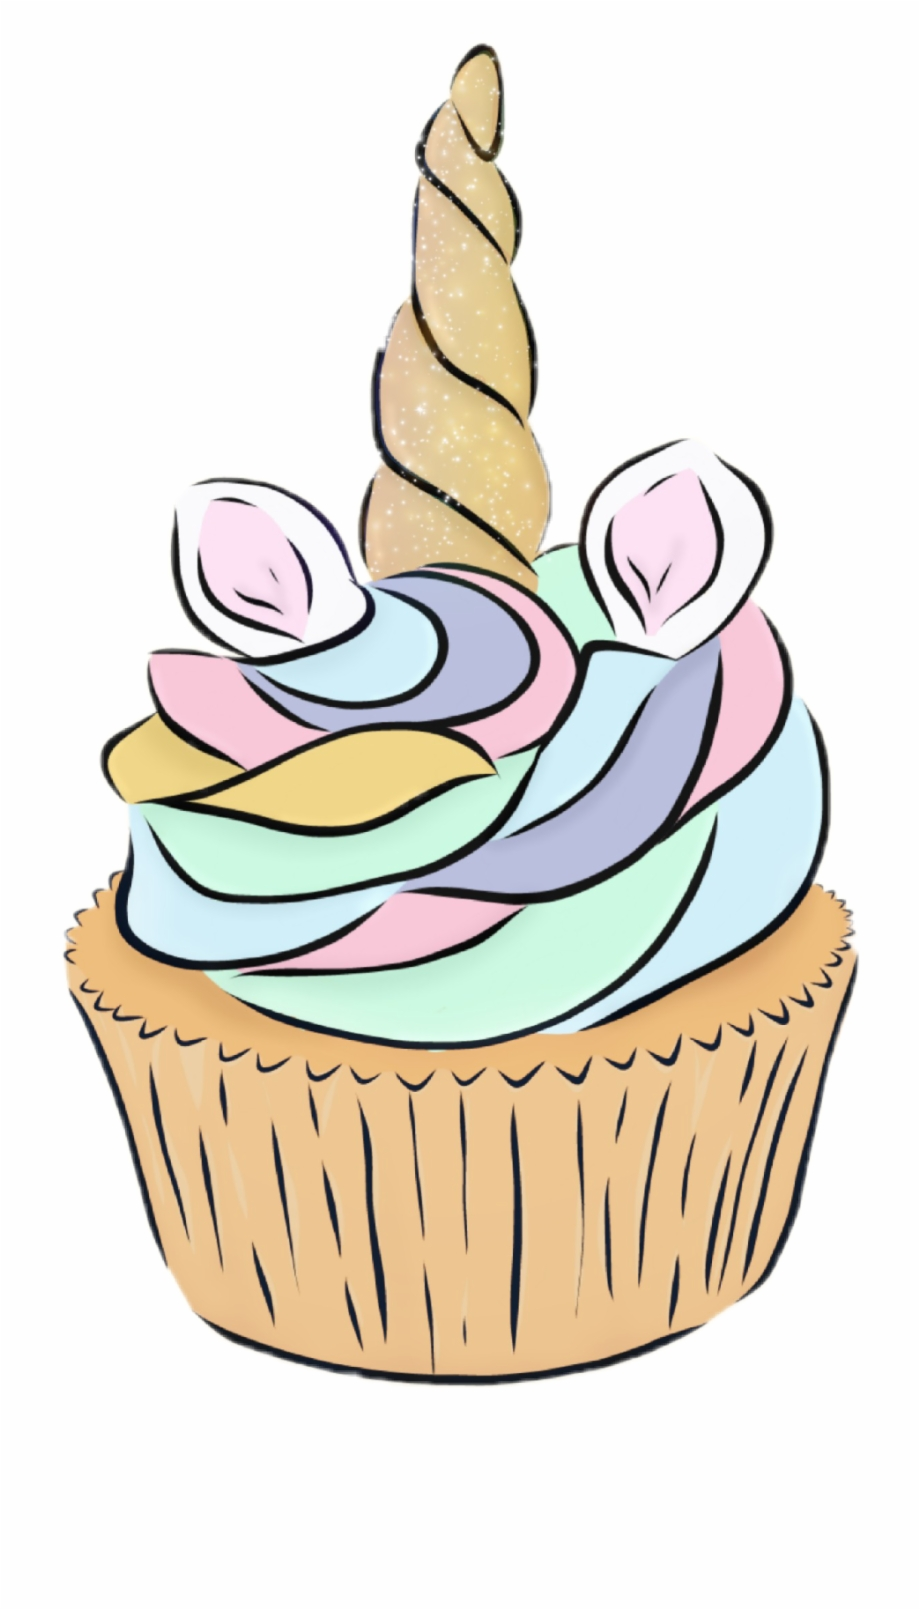 Tumblr cupcake clipart png royalty free library unicorn #cupcake #tumblr - Unicorn Cupcake Drawing ... png royalty free library